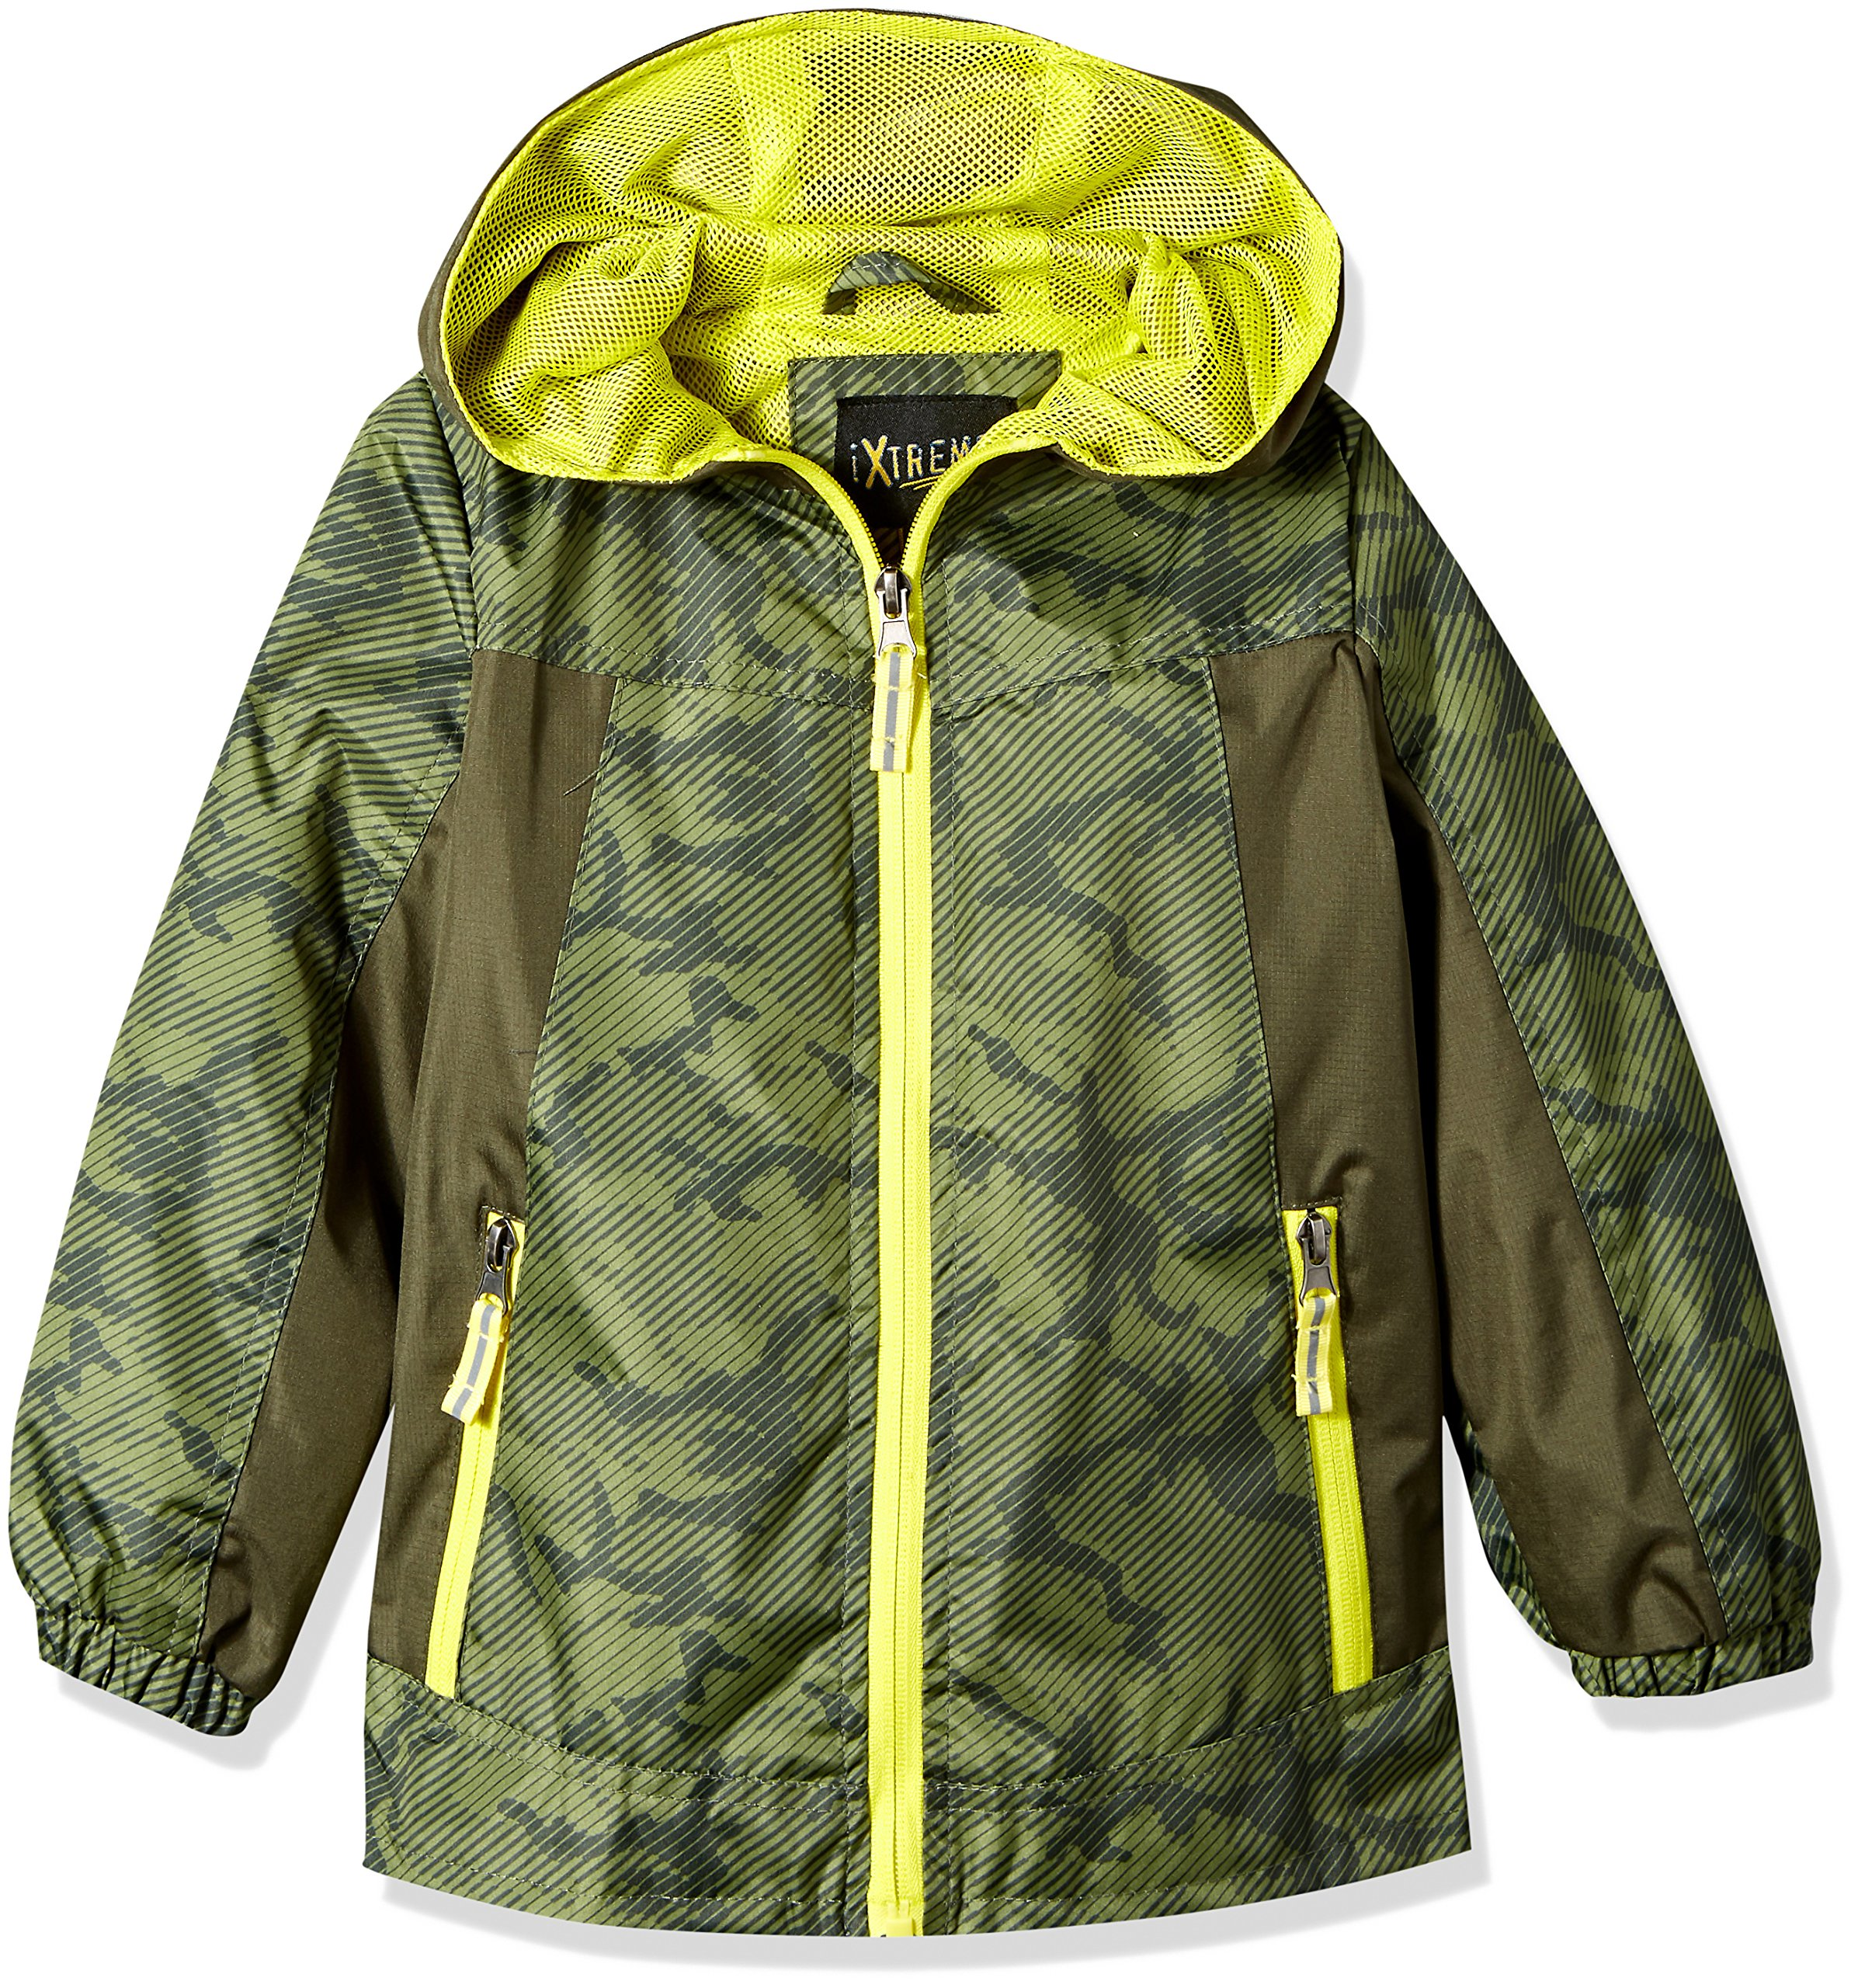 iXtreme Big Boys' Ripstop Active Jacket with Mesh Lining, Olive, 14/16